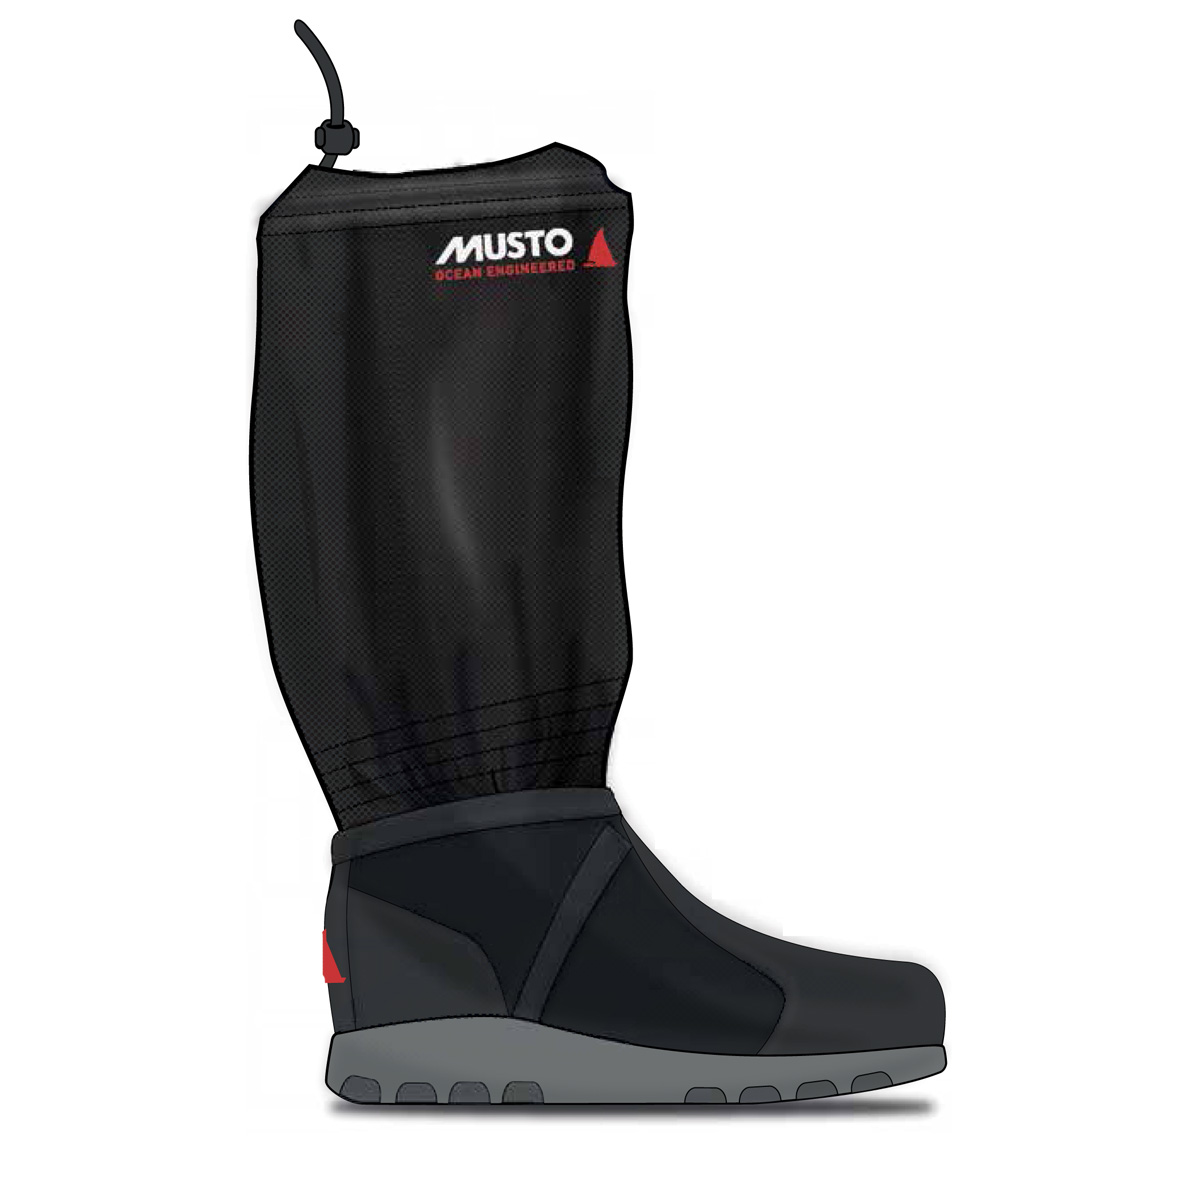 MUSTO SOUTHERN OCEAN BOOT (80507)